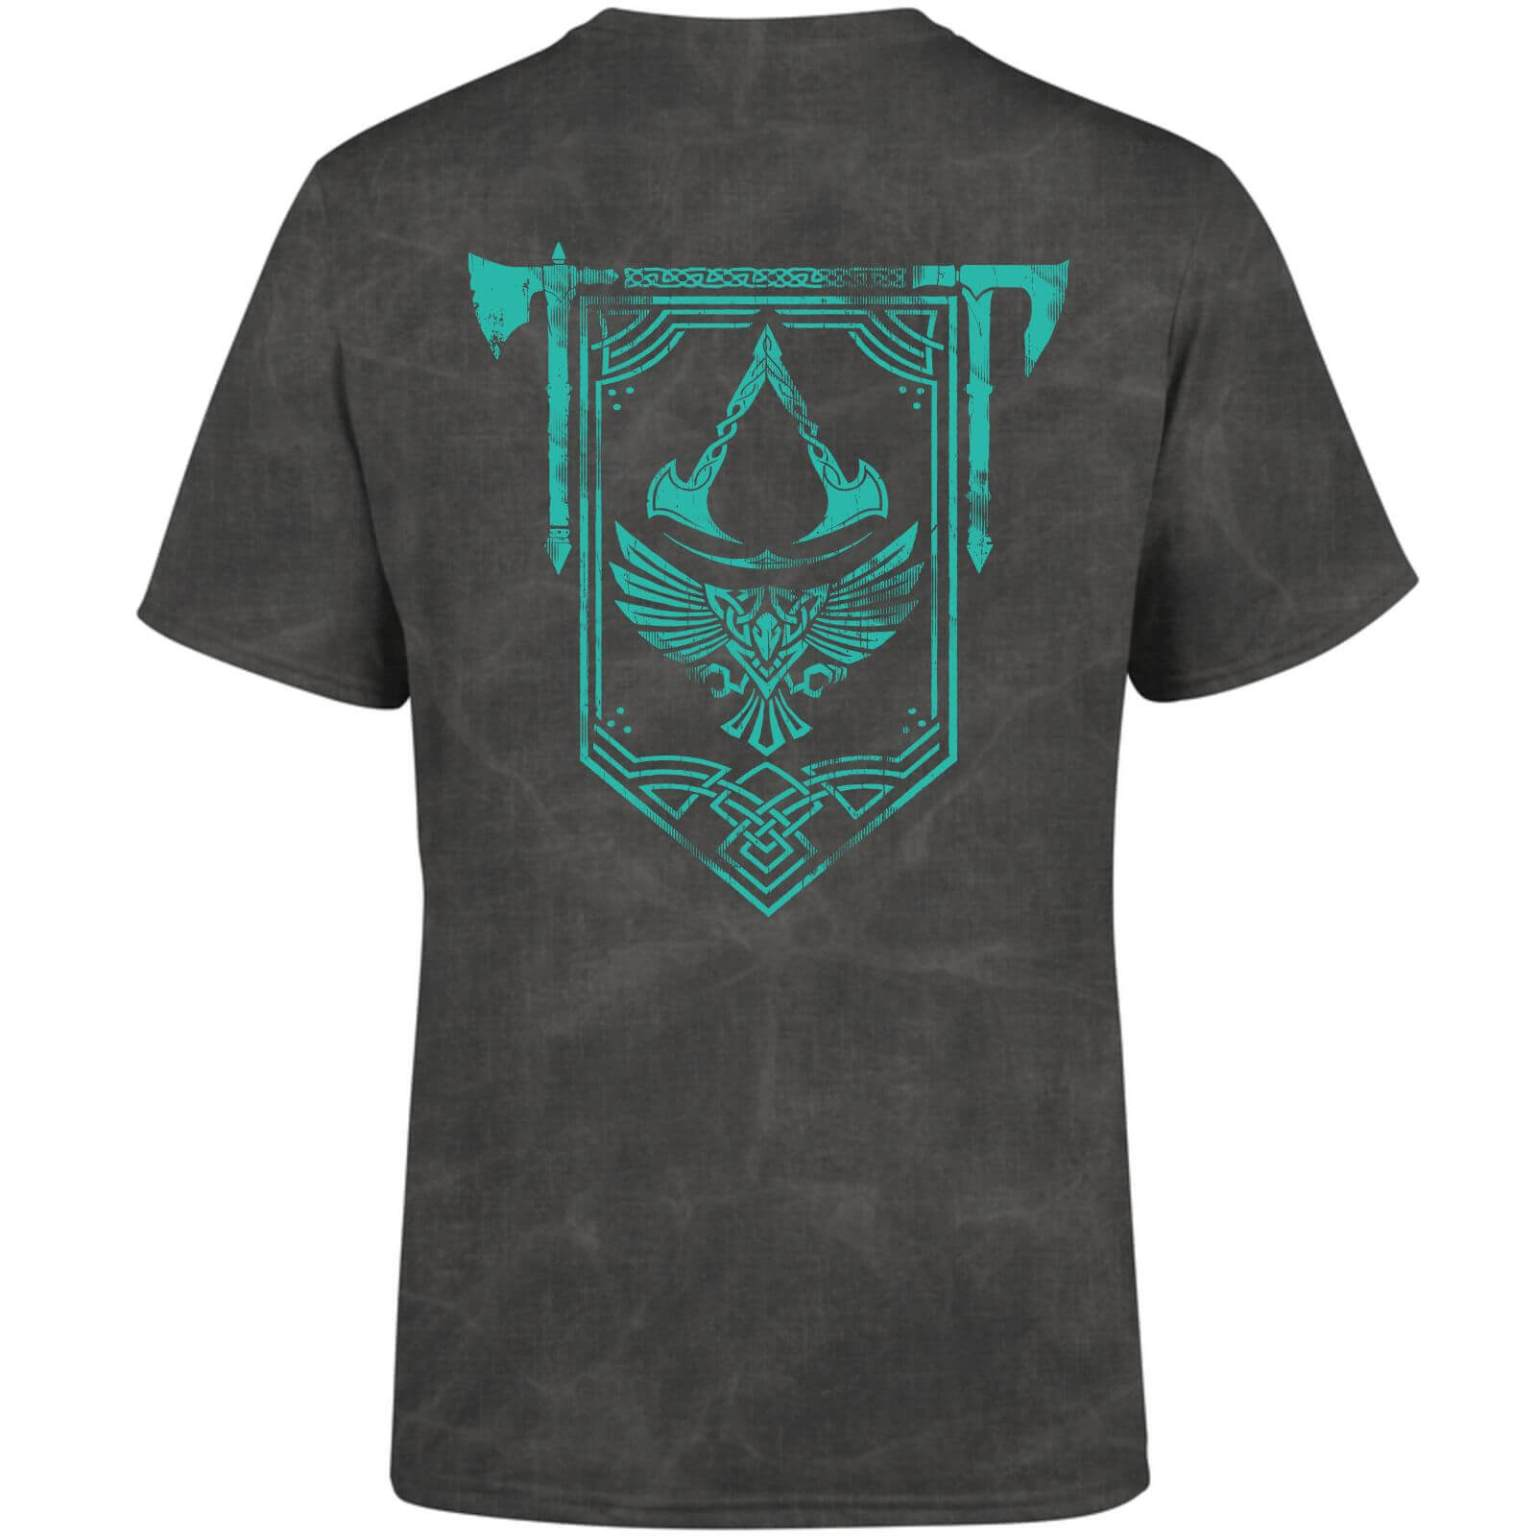 ➡CHOLLO CAMISETA ASSASIN'S CREED VALHALLA FOSFORESCENTE⬅